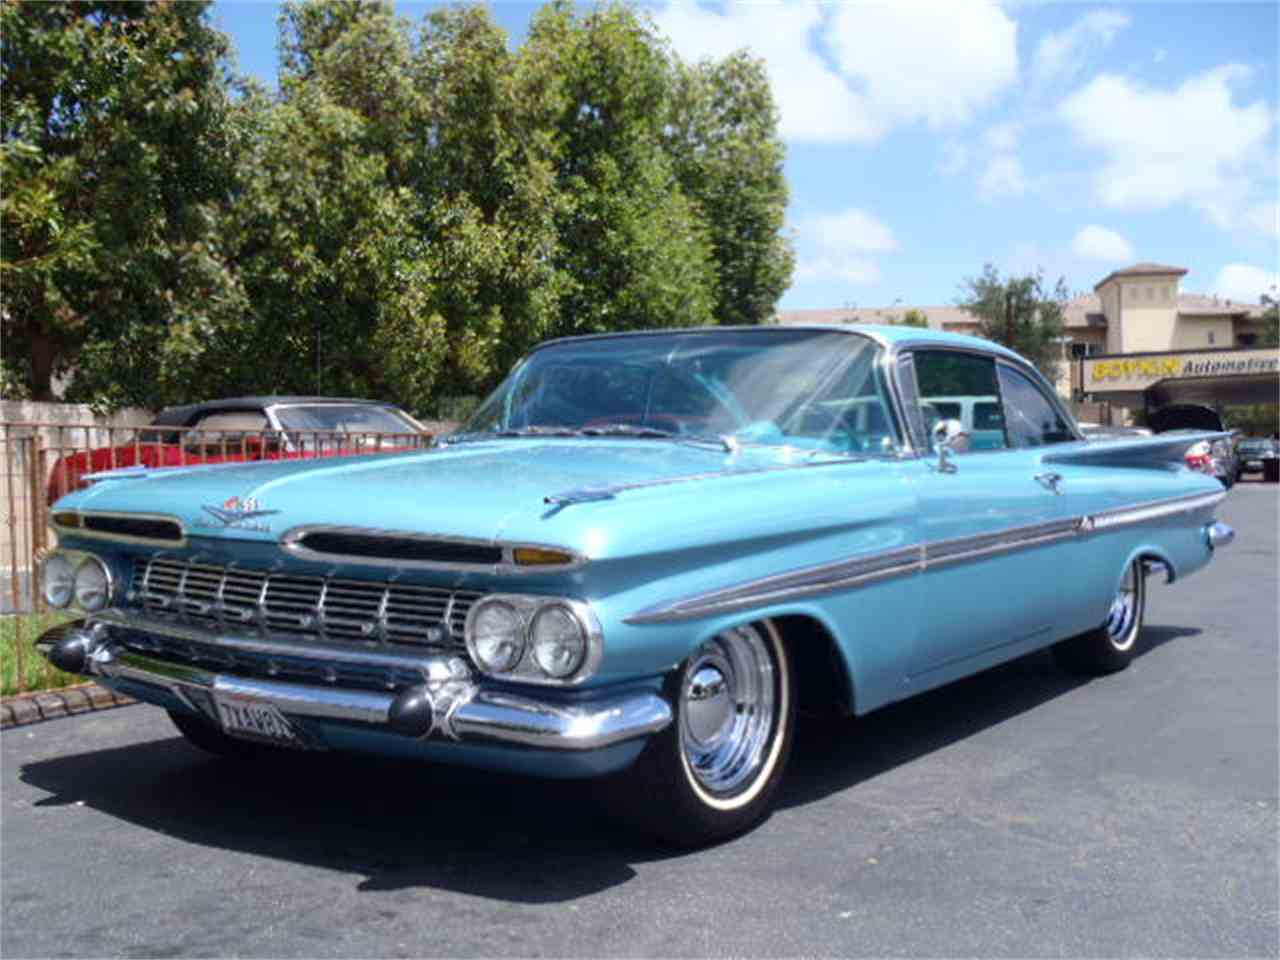 Listing All Cars >> 1959 Chevrolet Impala for Sale | ClassicCars.com | CC-985013